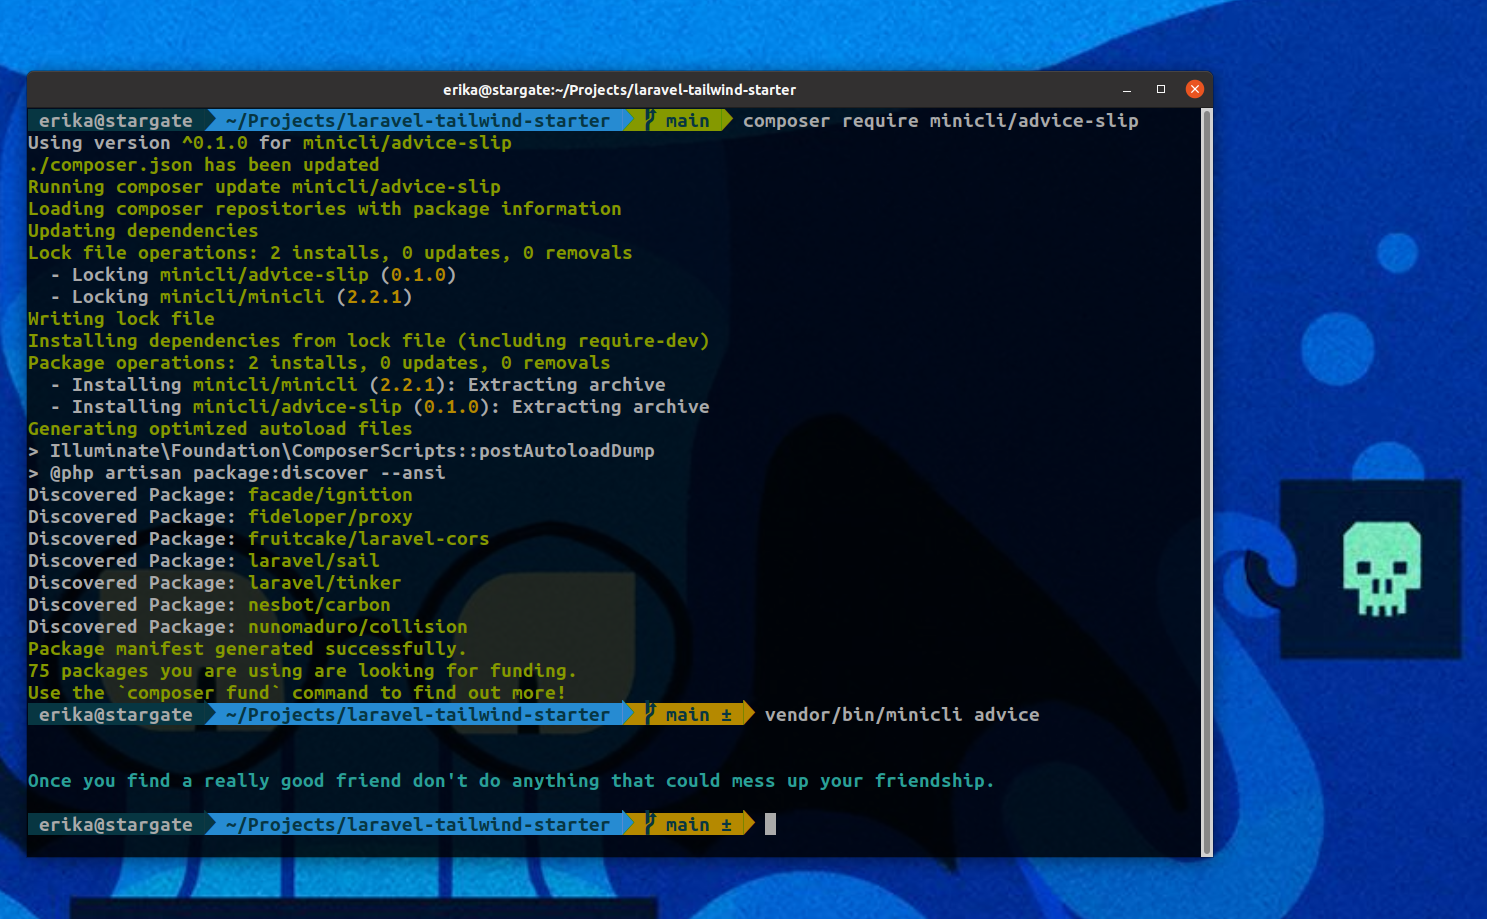 Screenshot of terminal with the composer require command installing minicli/advice-slip